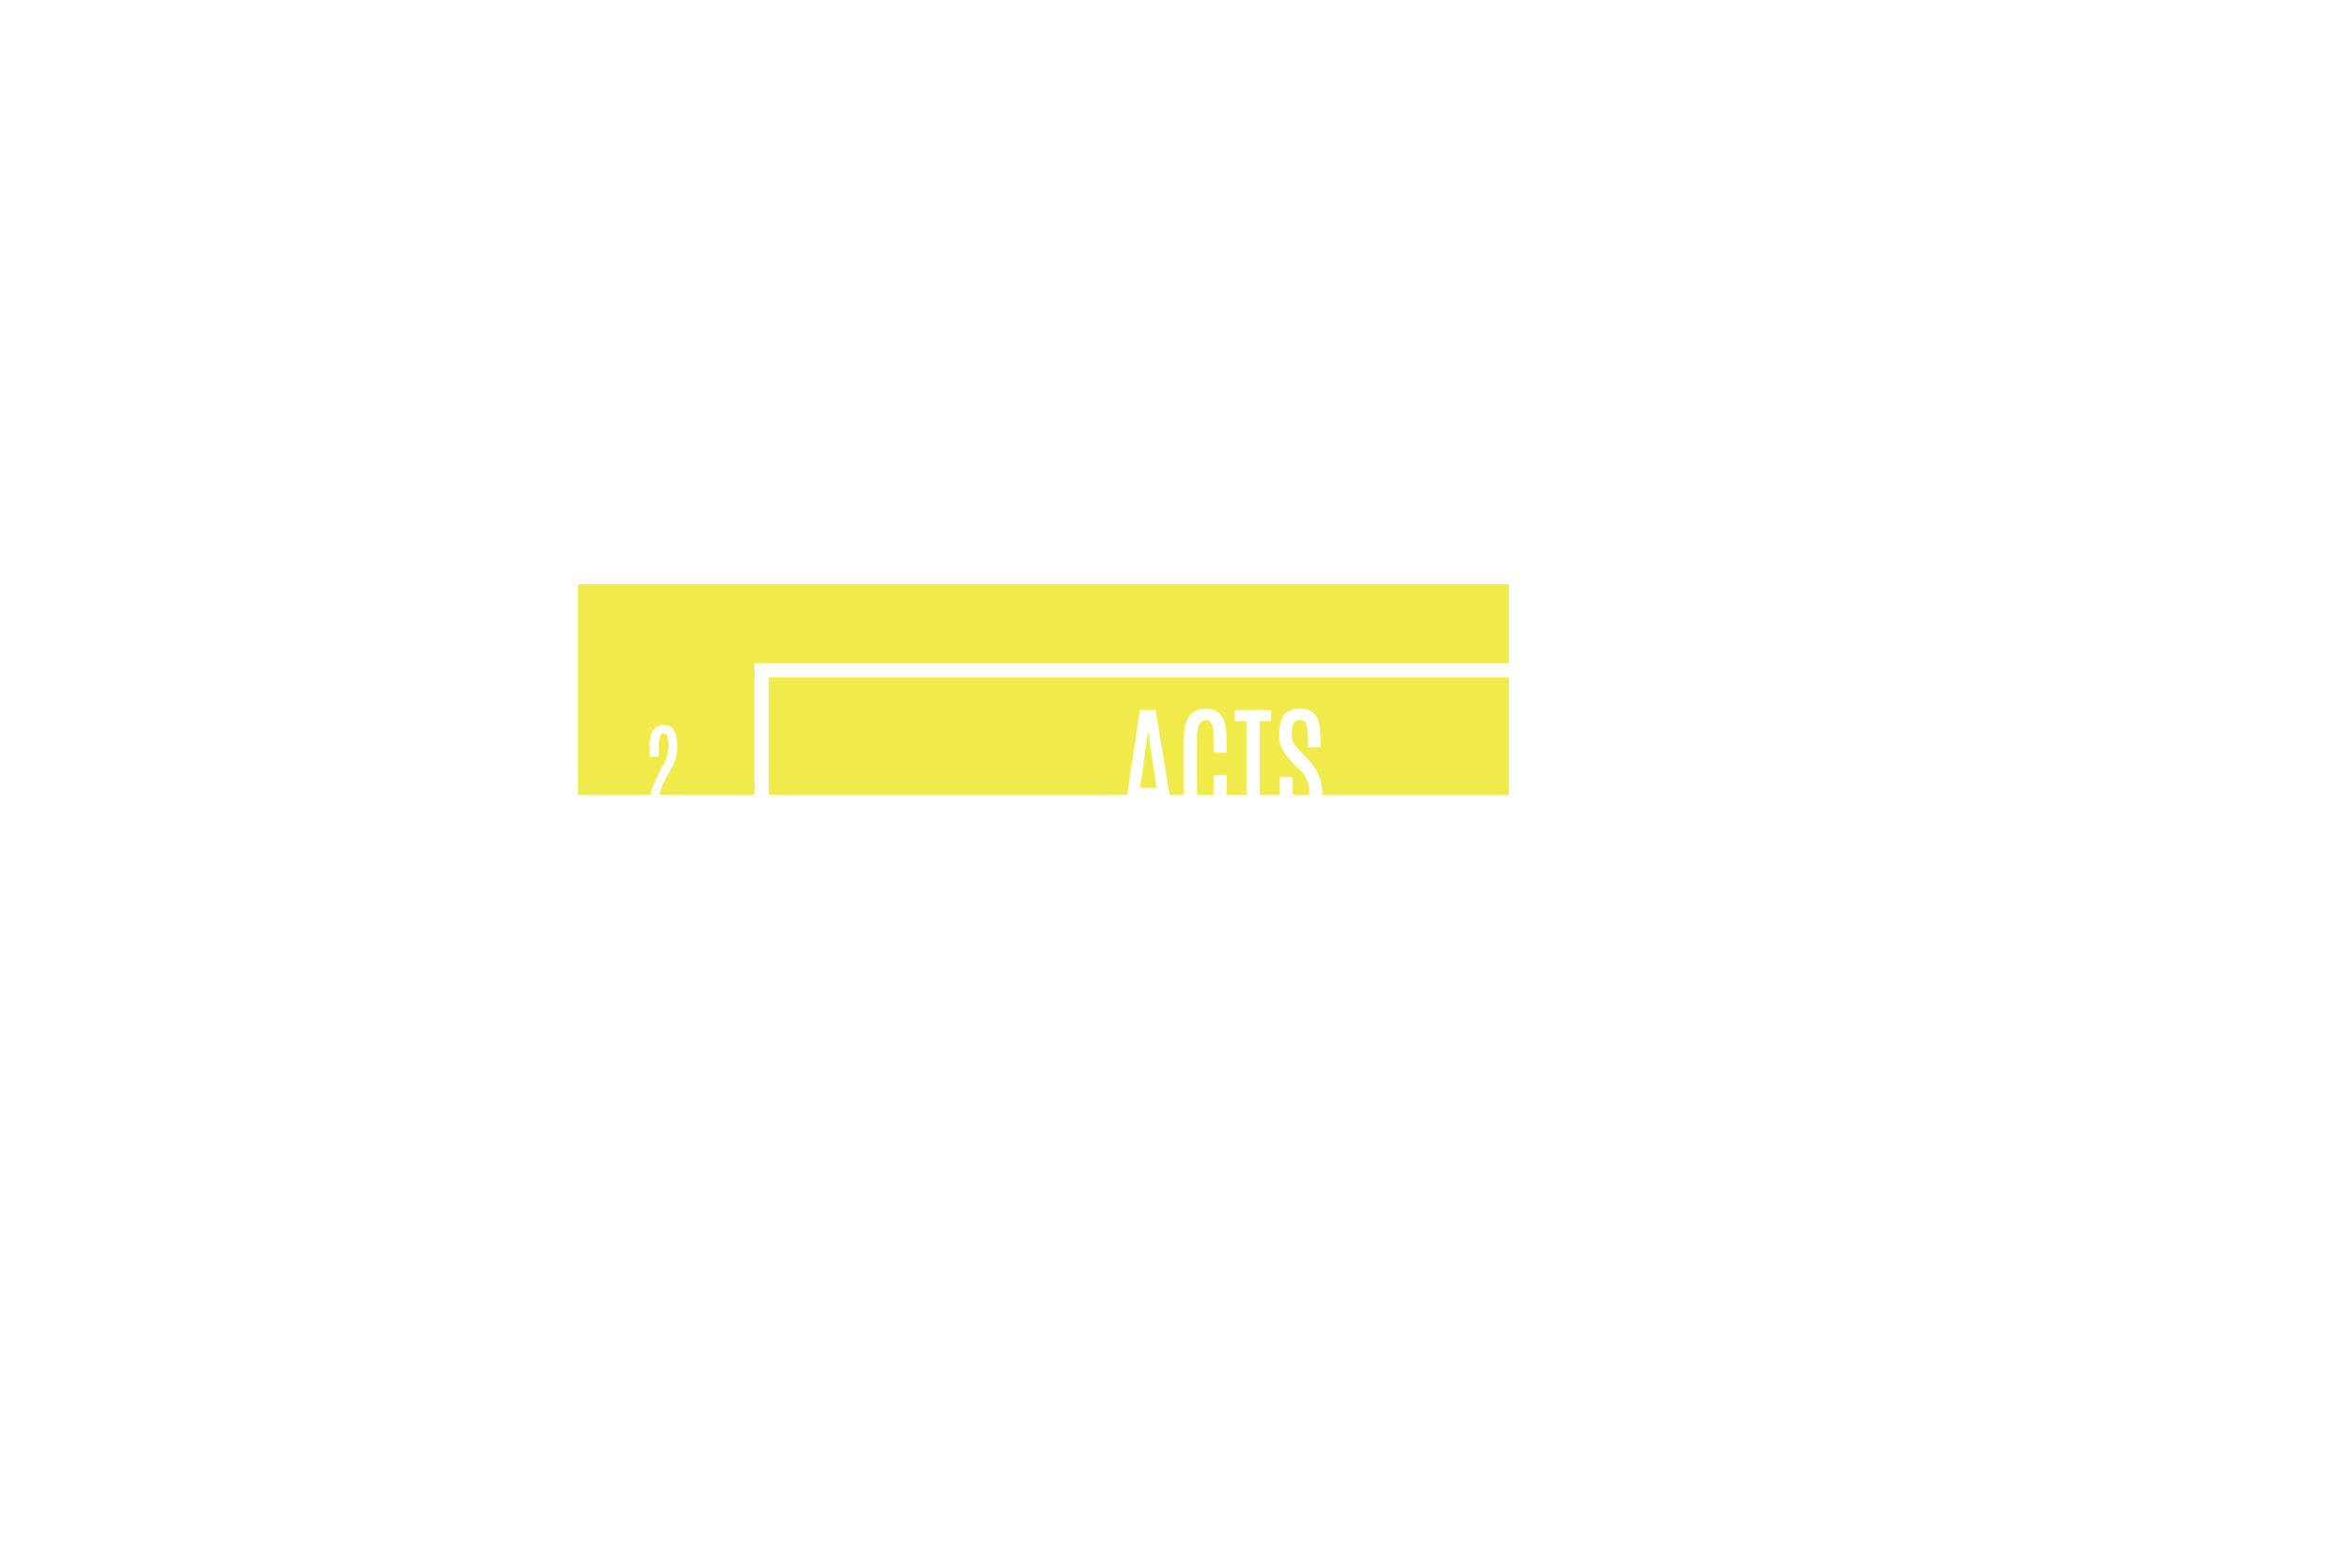 acts 2.png